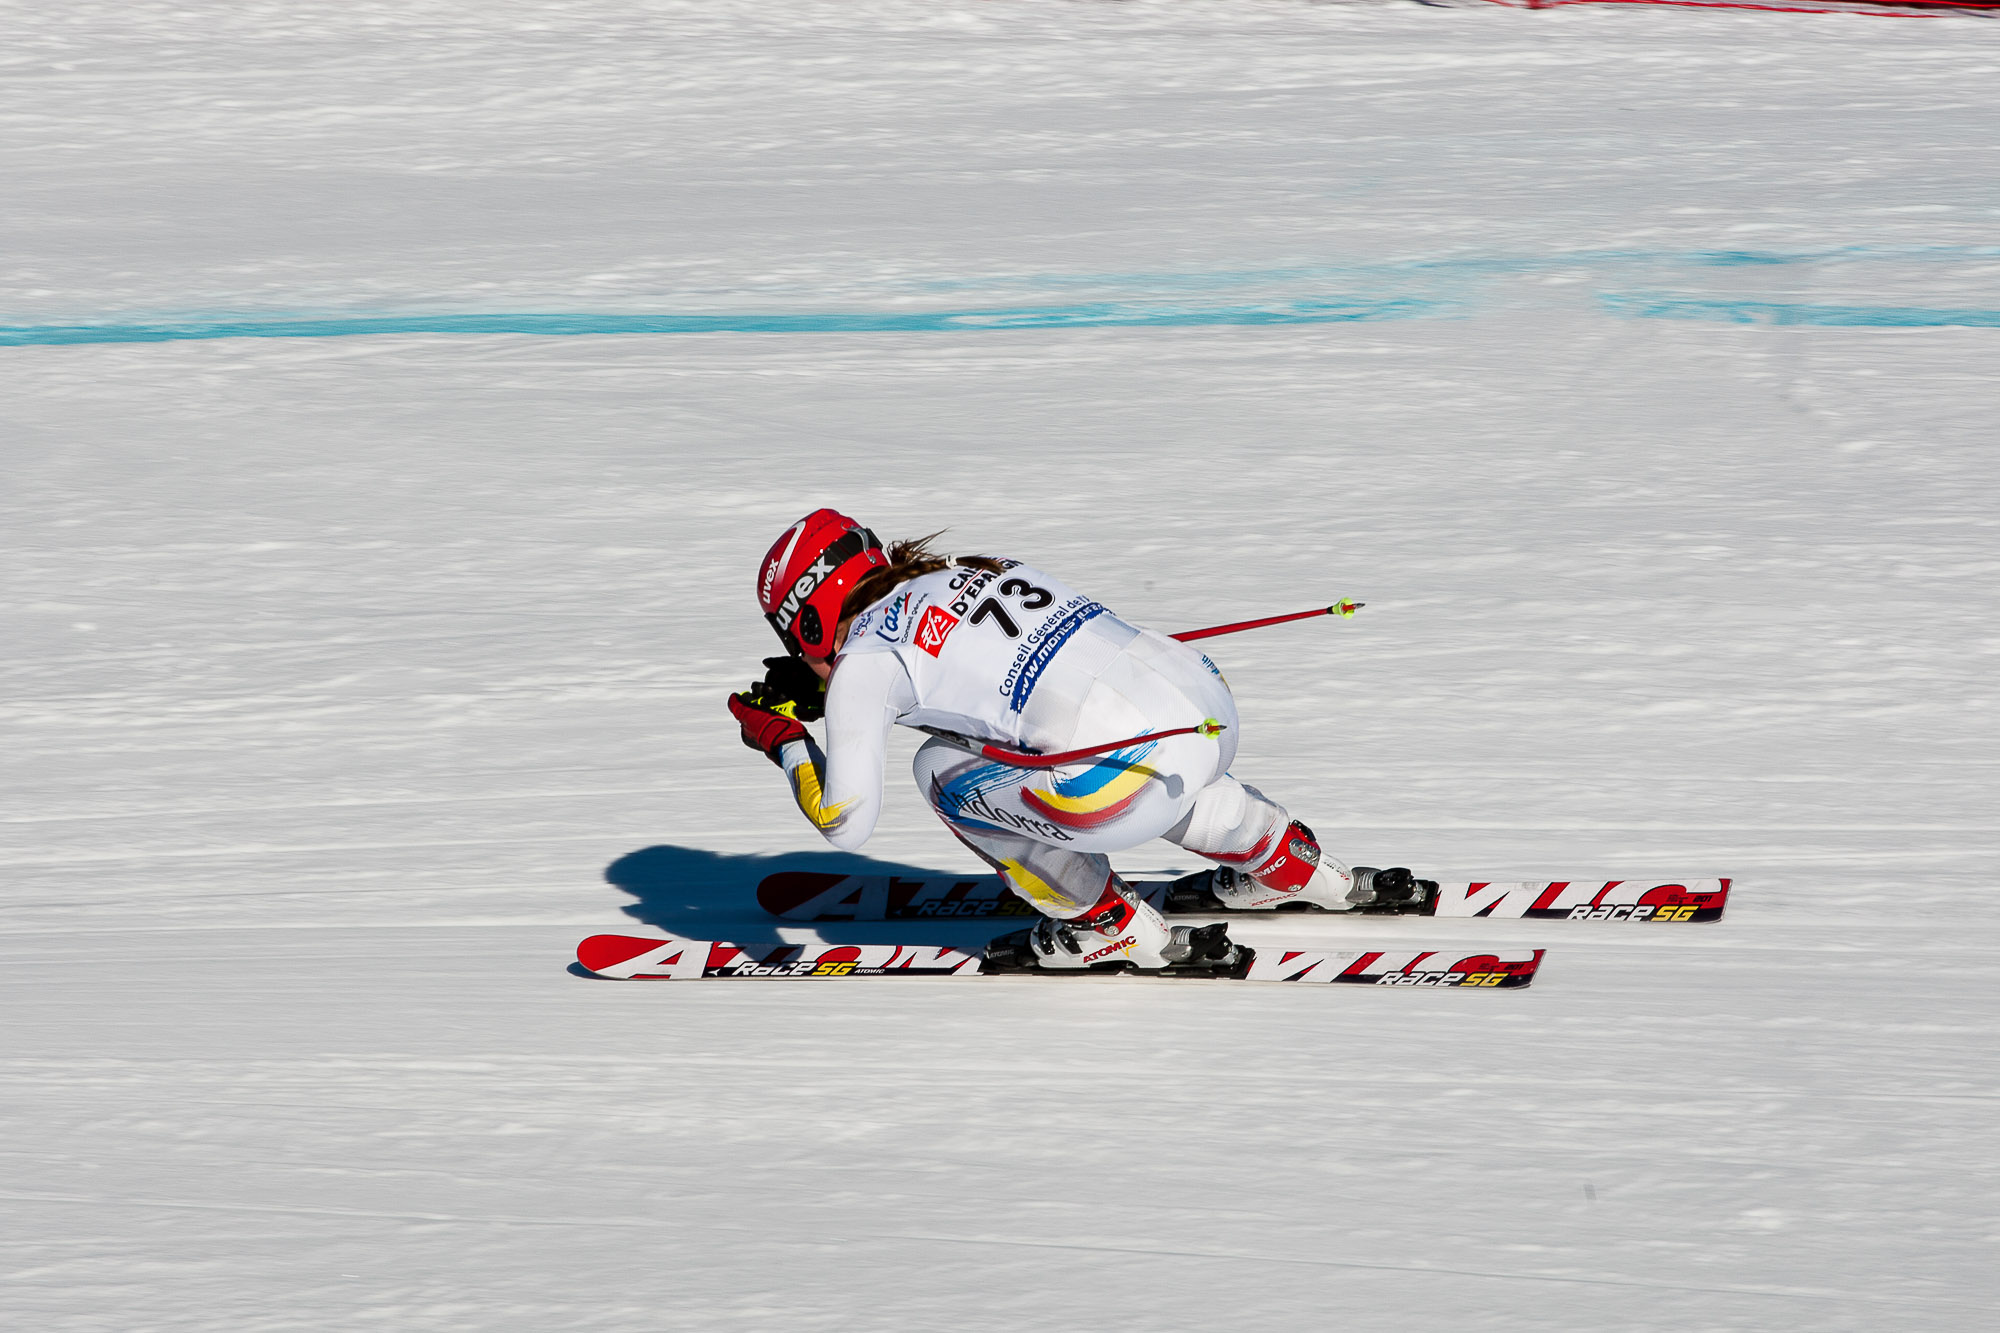 Coupe_Europe_ski_dames-177.jpg